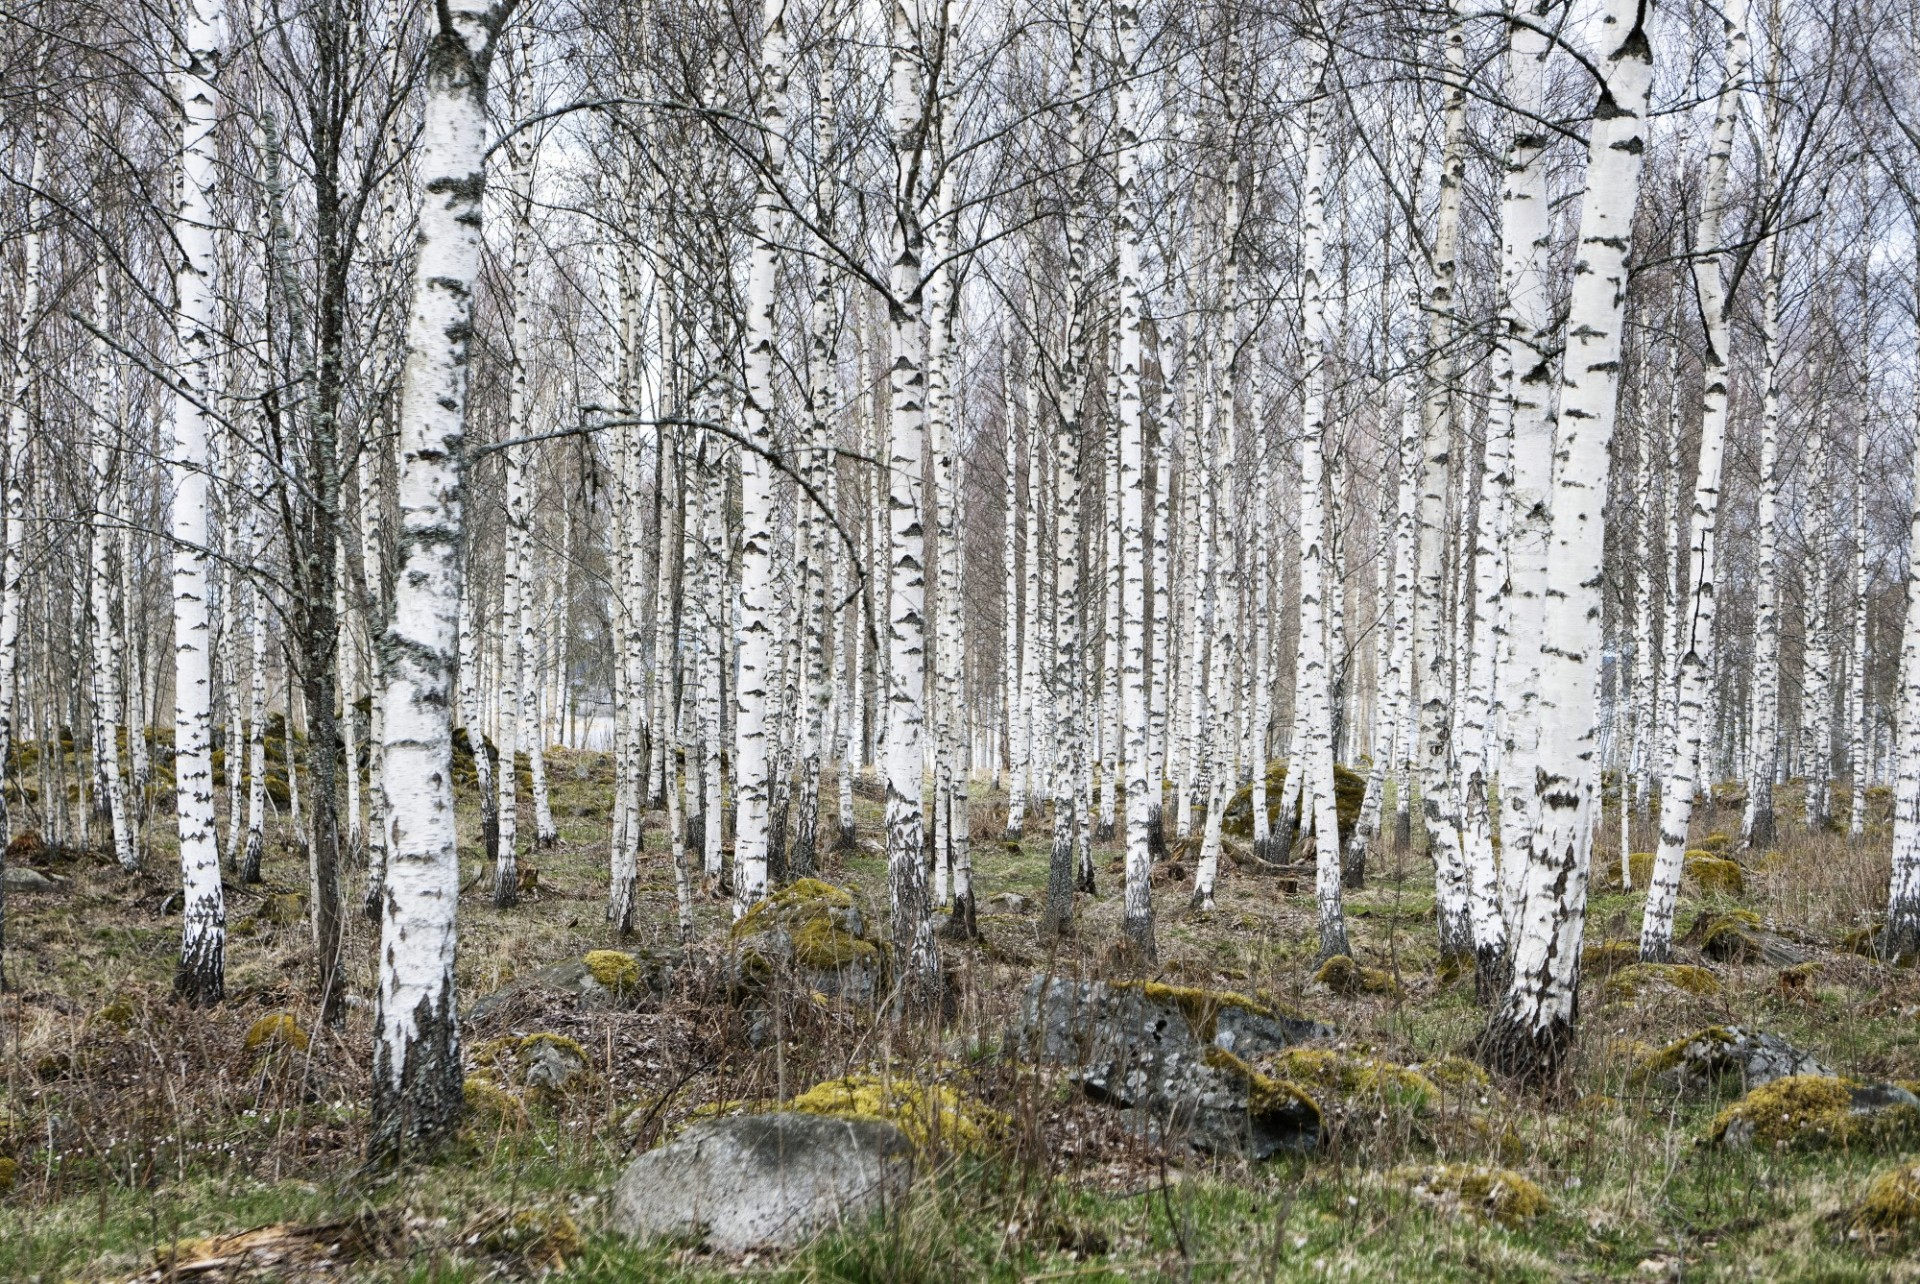 Birches by Ulf Lundin